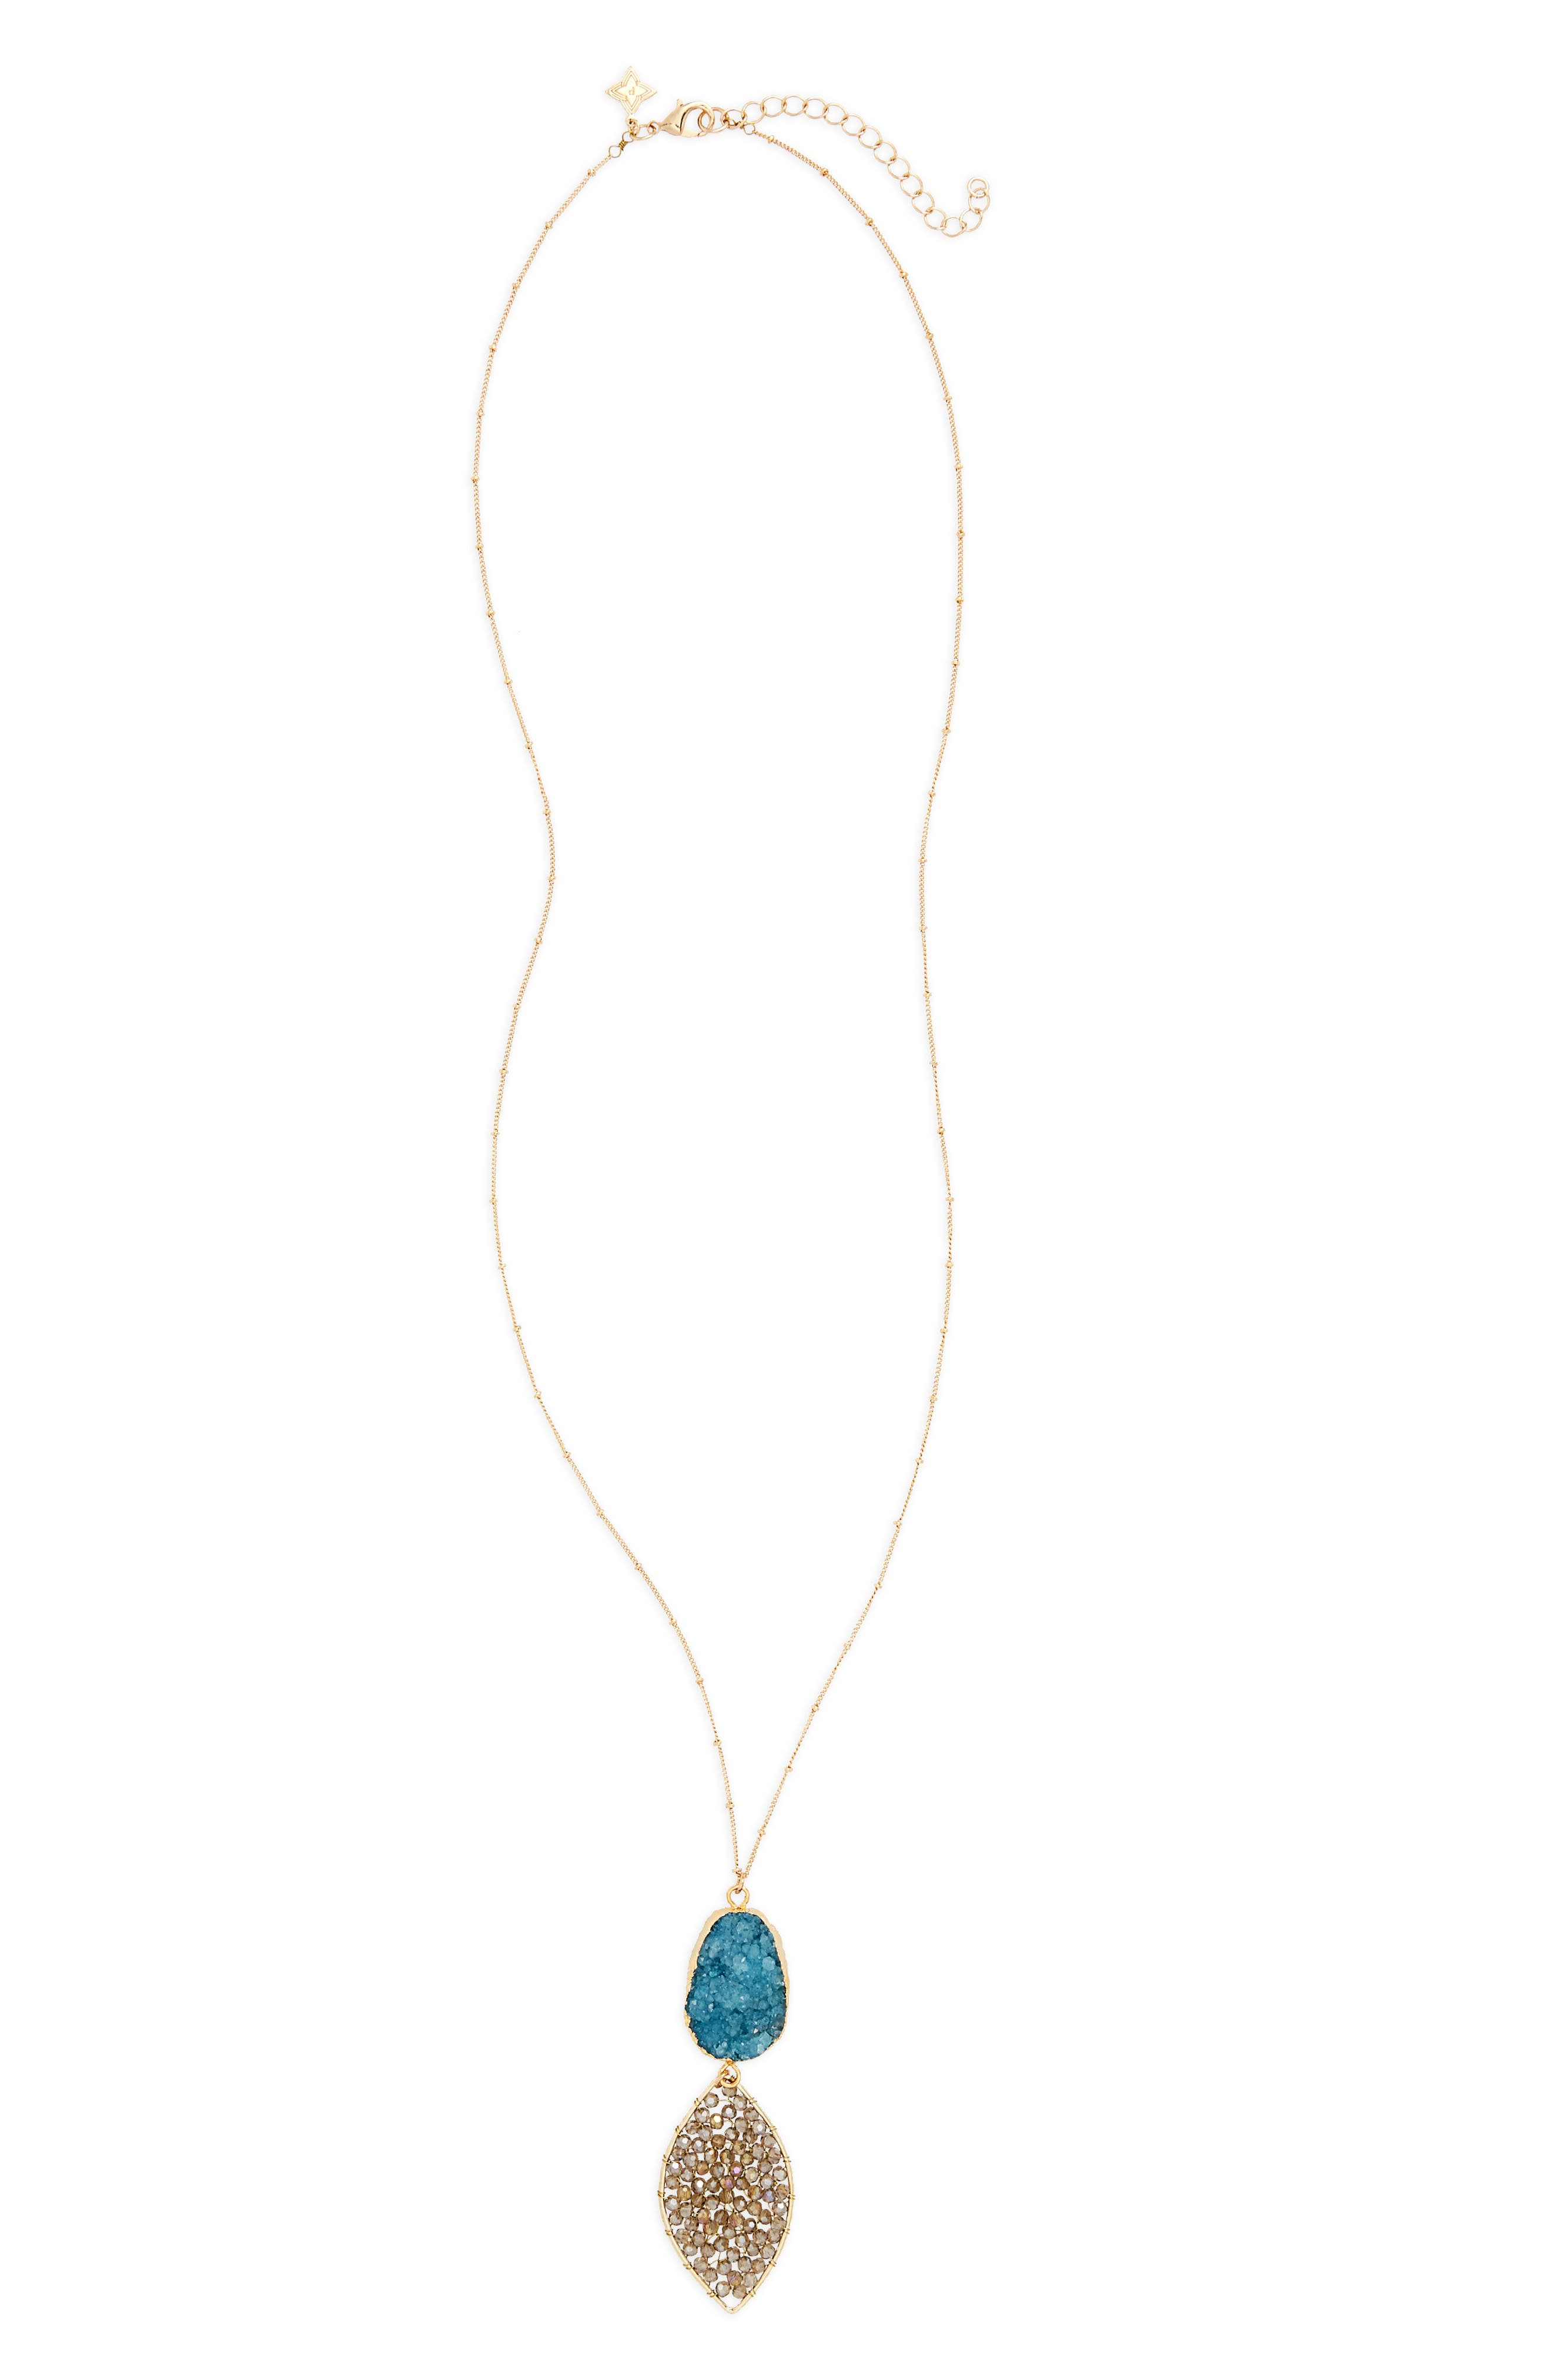 Main Image - Panacea Stone & Beaded Crystal Pendant Necklace